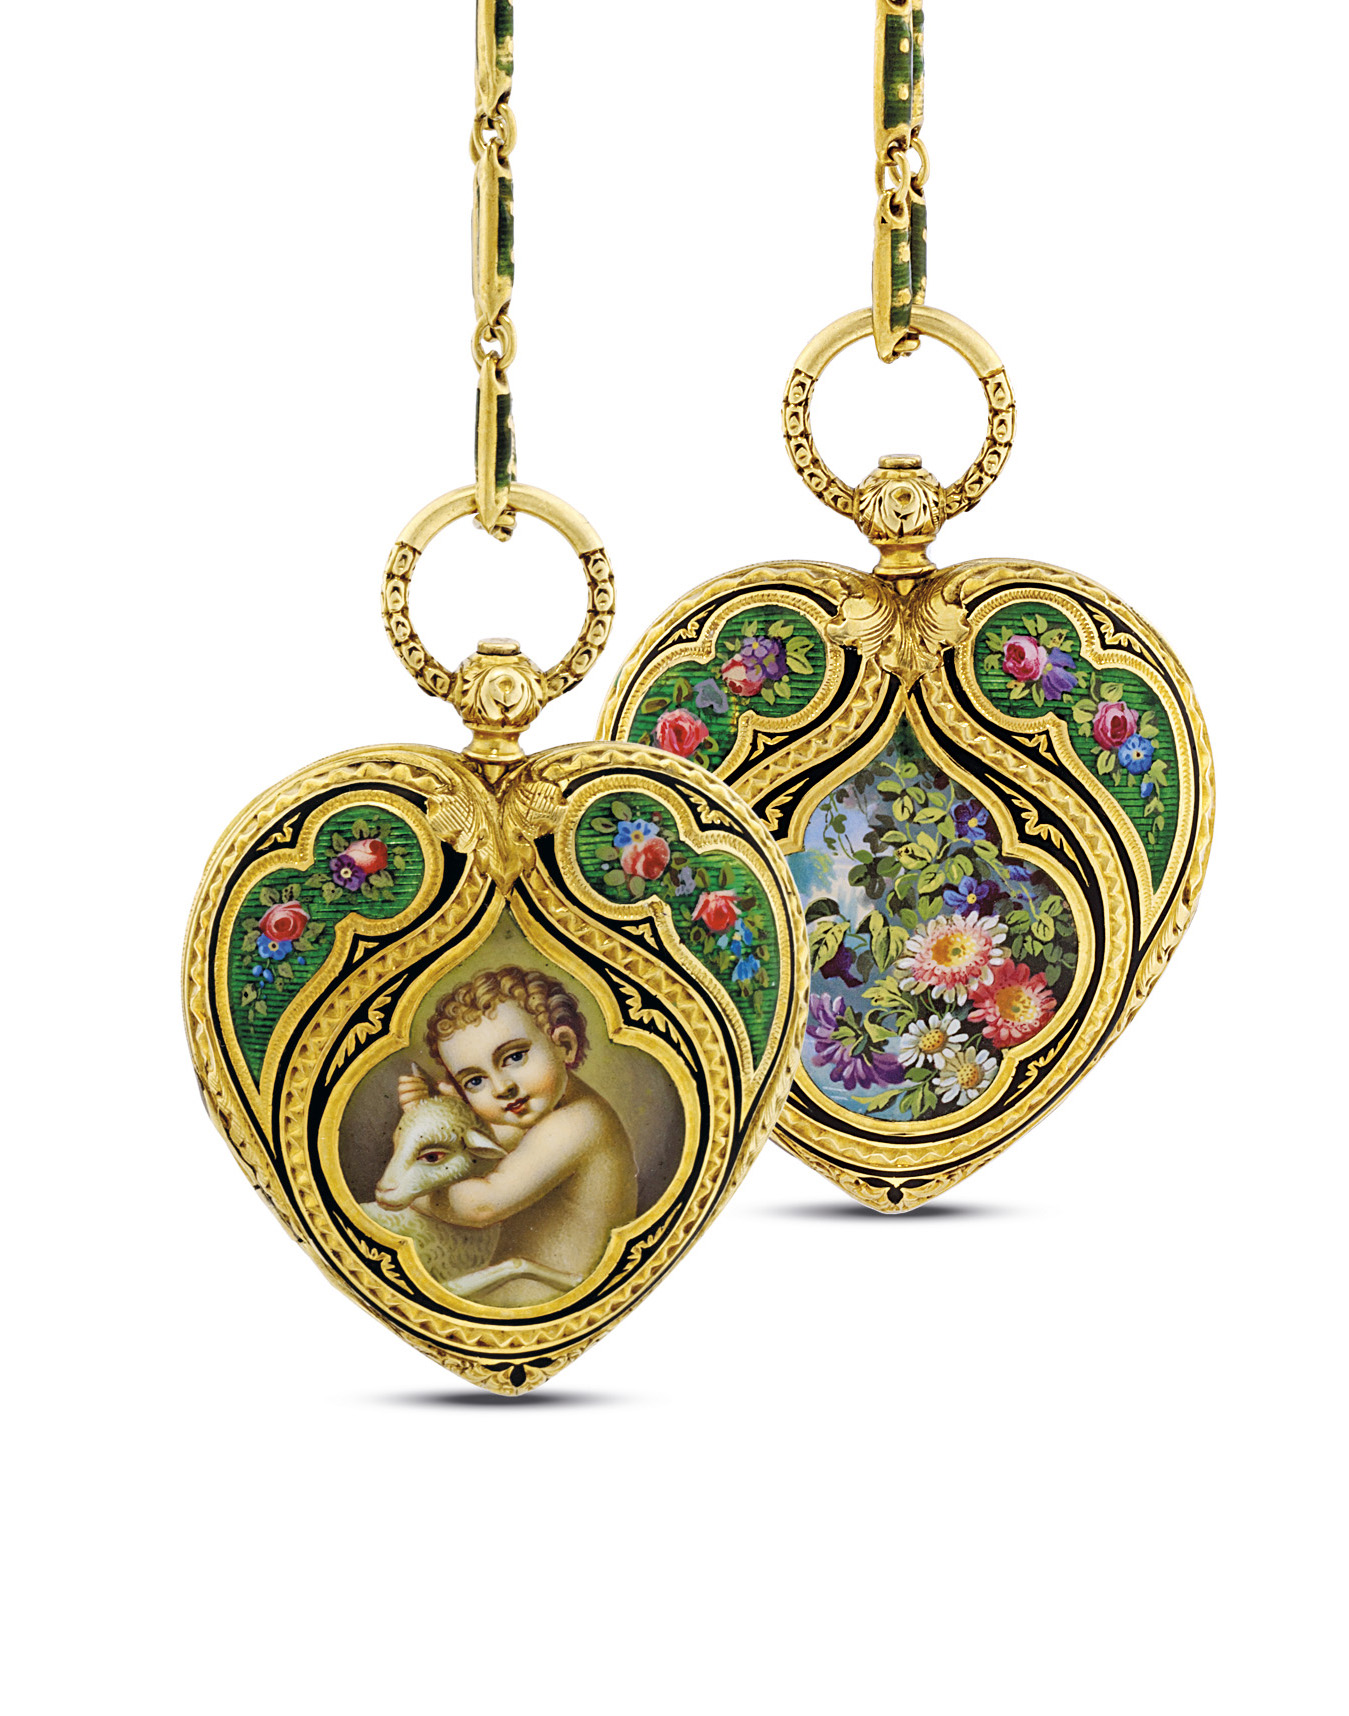 GOLAY. A RARE GOLD AND ENAMEL HEART-SHAPED PENDANT WATCH WITH MATCHING CHAIN AND KEY SIGNED GOLAY DERESCHE, GENEVE, NO. 4647, CIRCA 1820